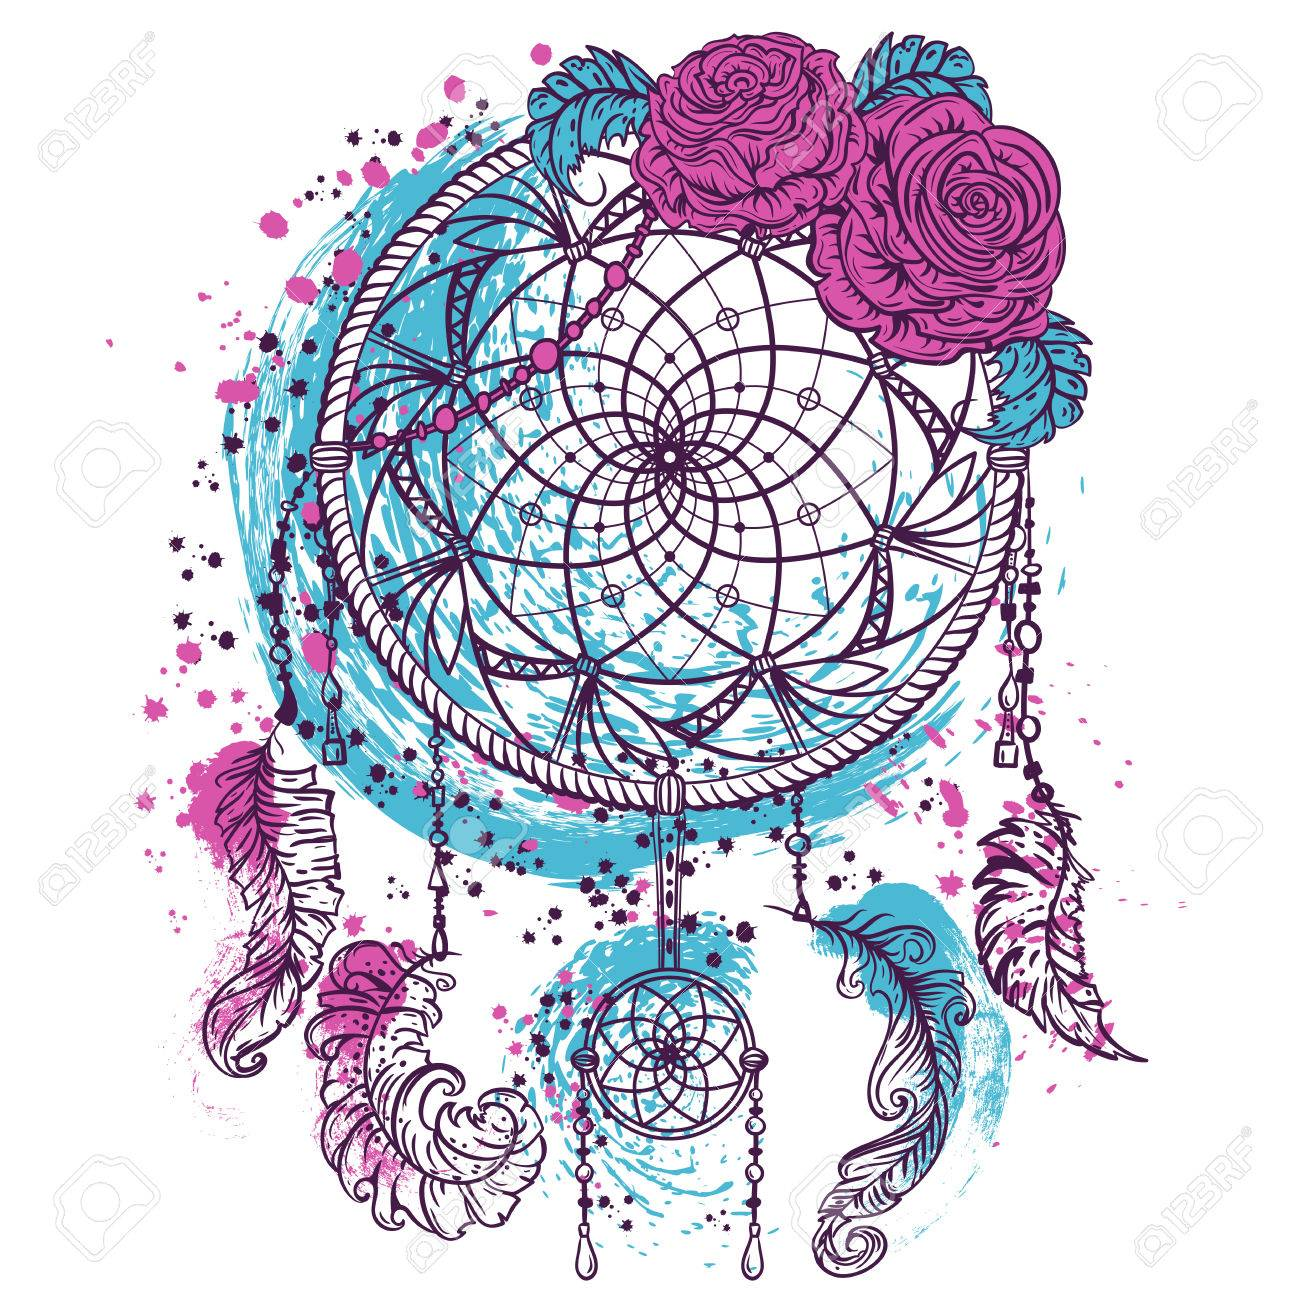 - Dream Catcher With Ornament And Roses. Tattoo Art. Colorful Hand